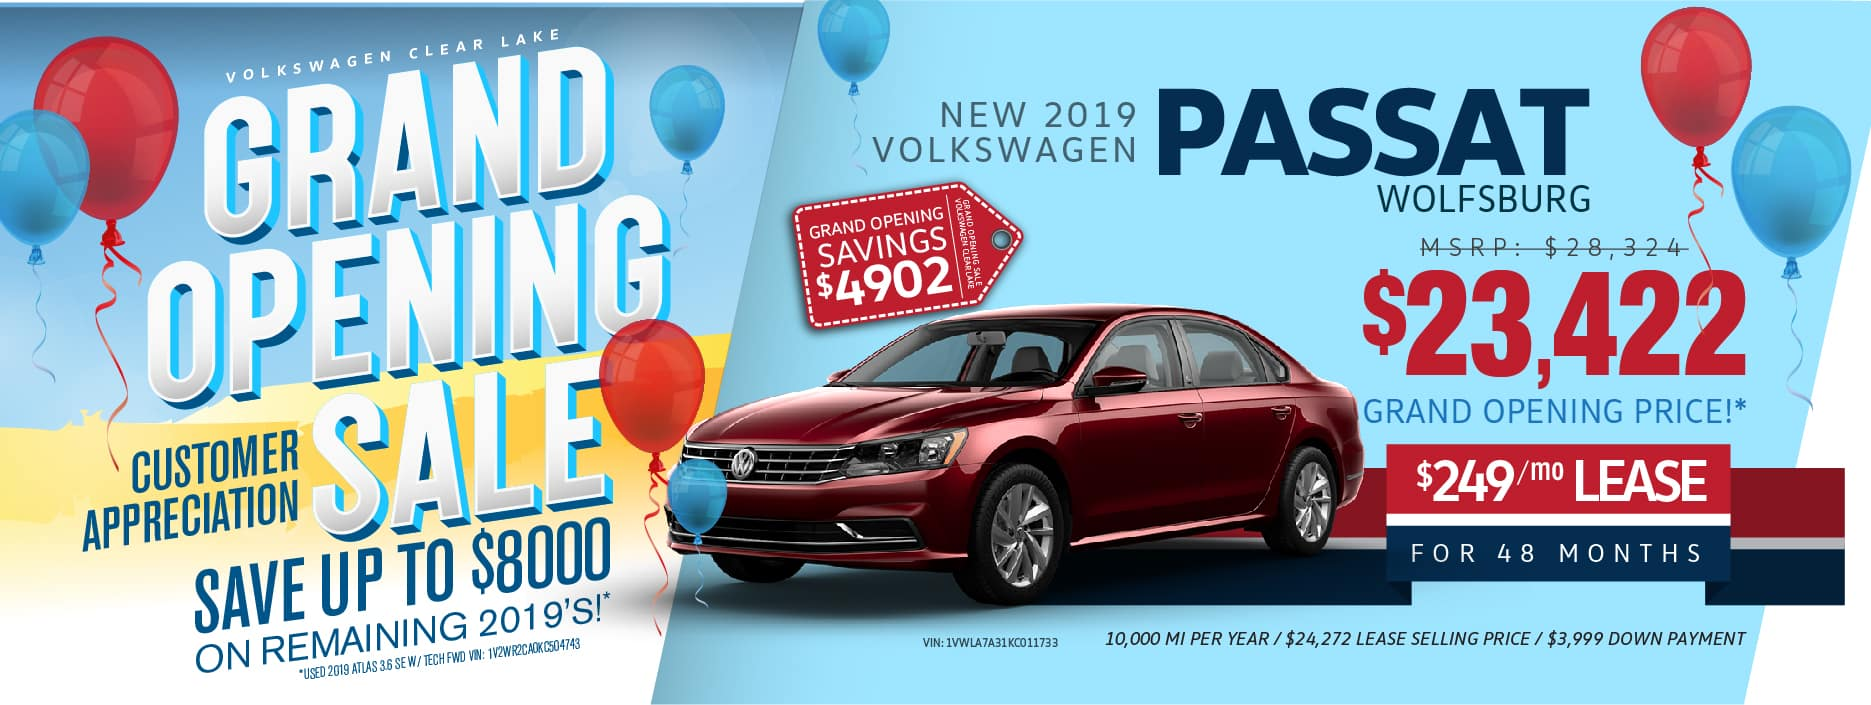 VW Clear Lake Grand-Opening Passat